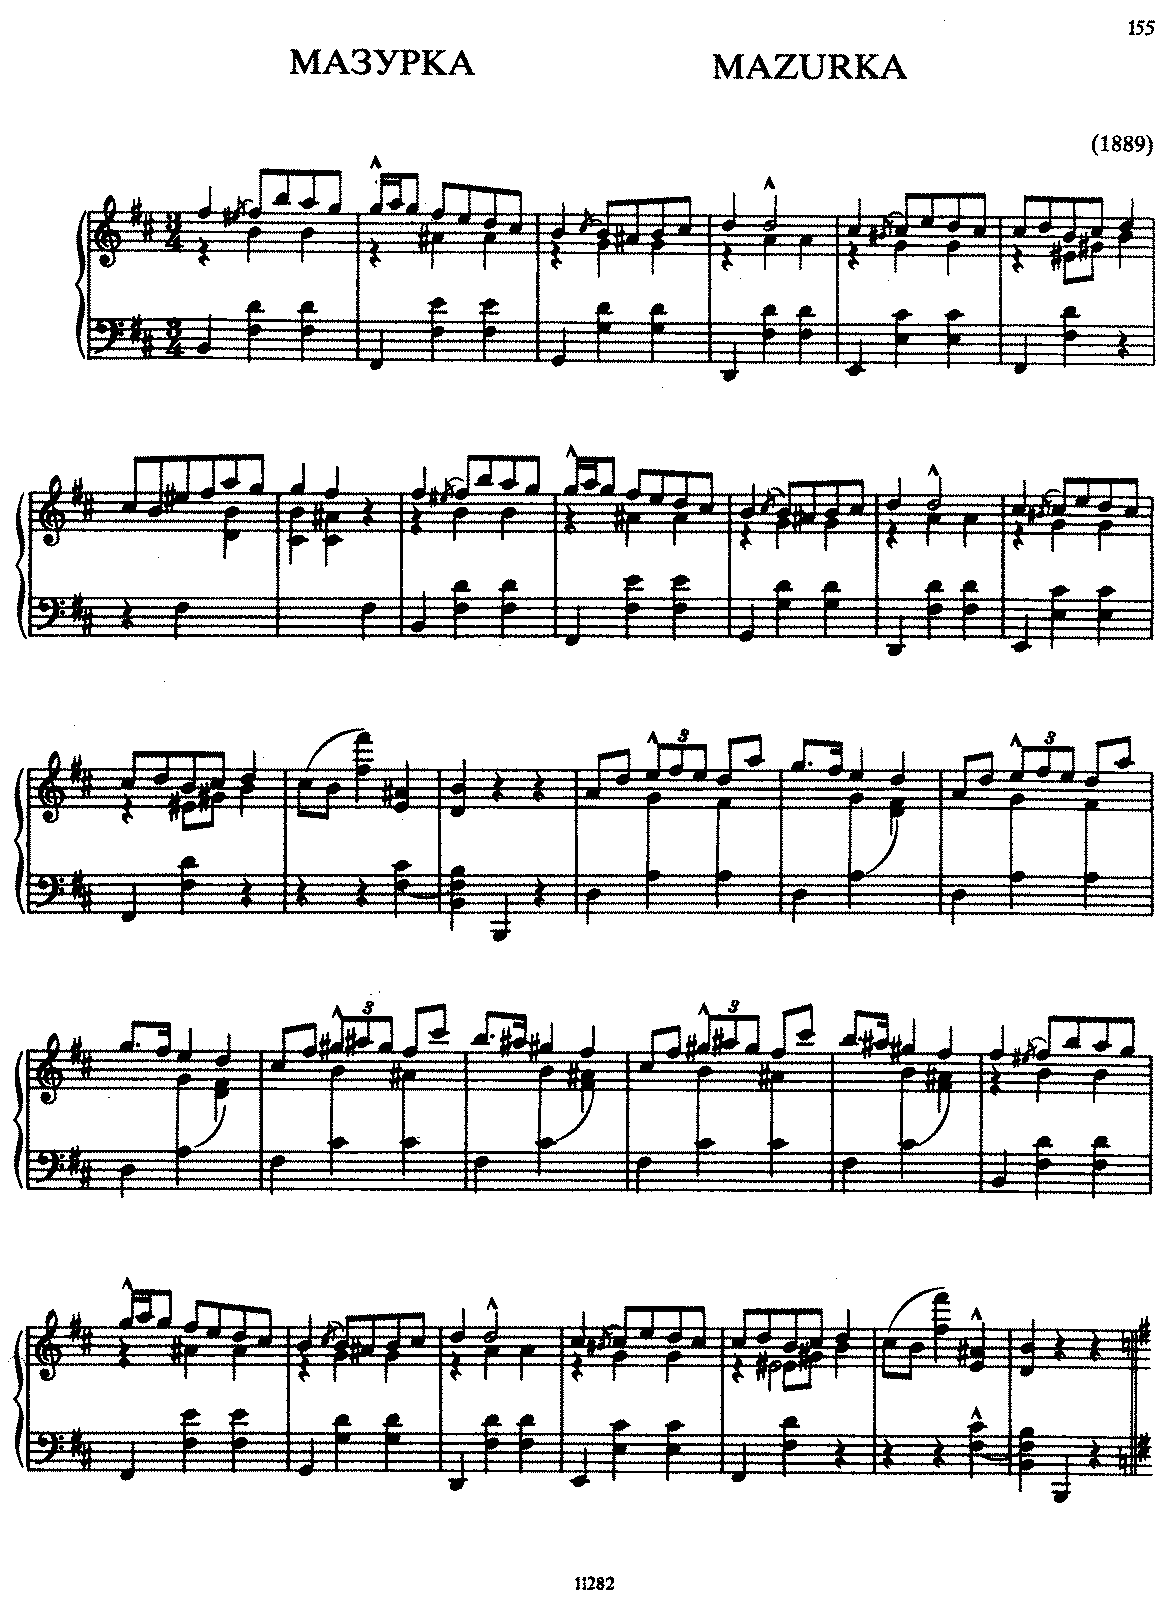 Scriabin - Op.misc - Mazurka in B minor (1889).pdf